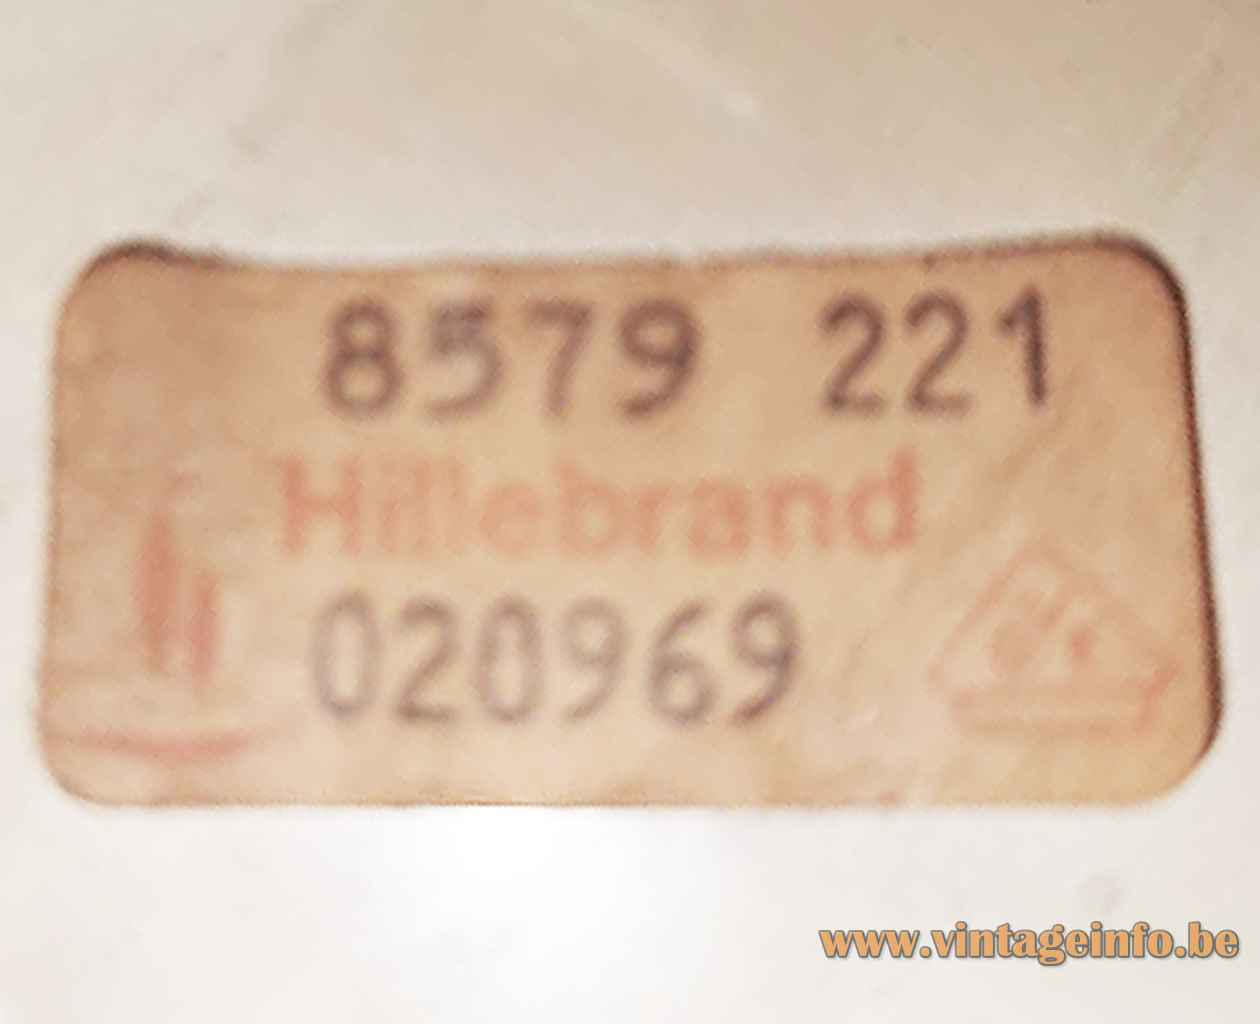 Hillebrand wall lamp 8579 square orange & white metal lampshade 1970s Germany paper label 8579-221